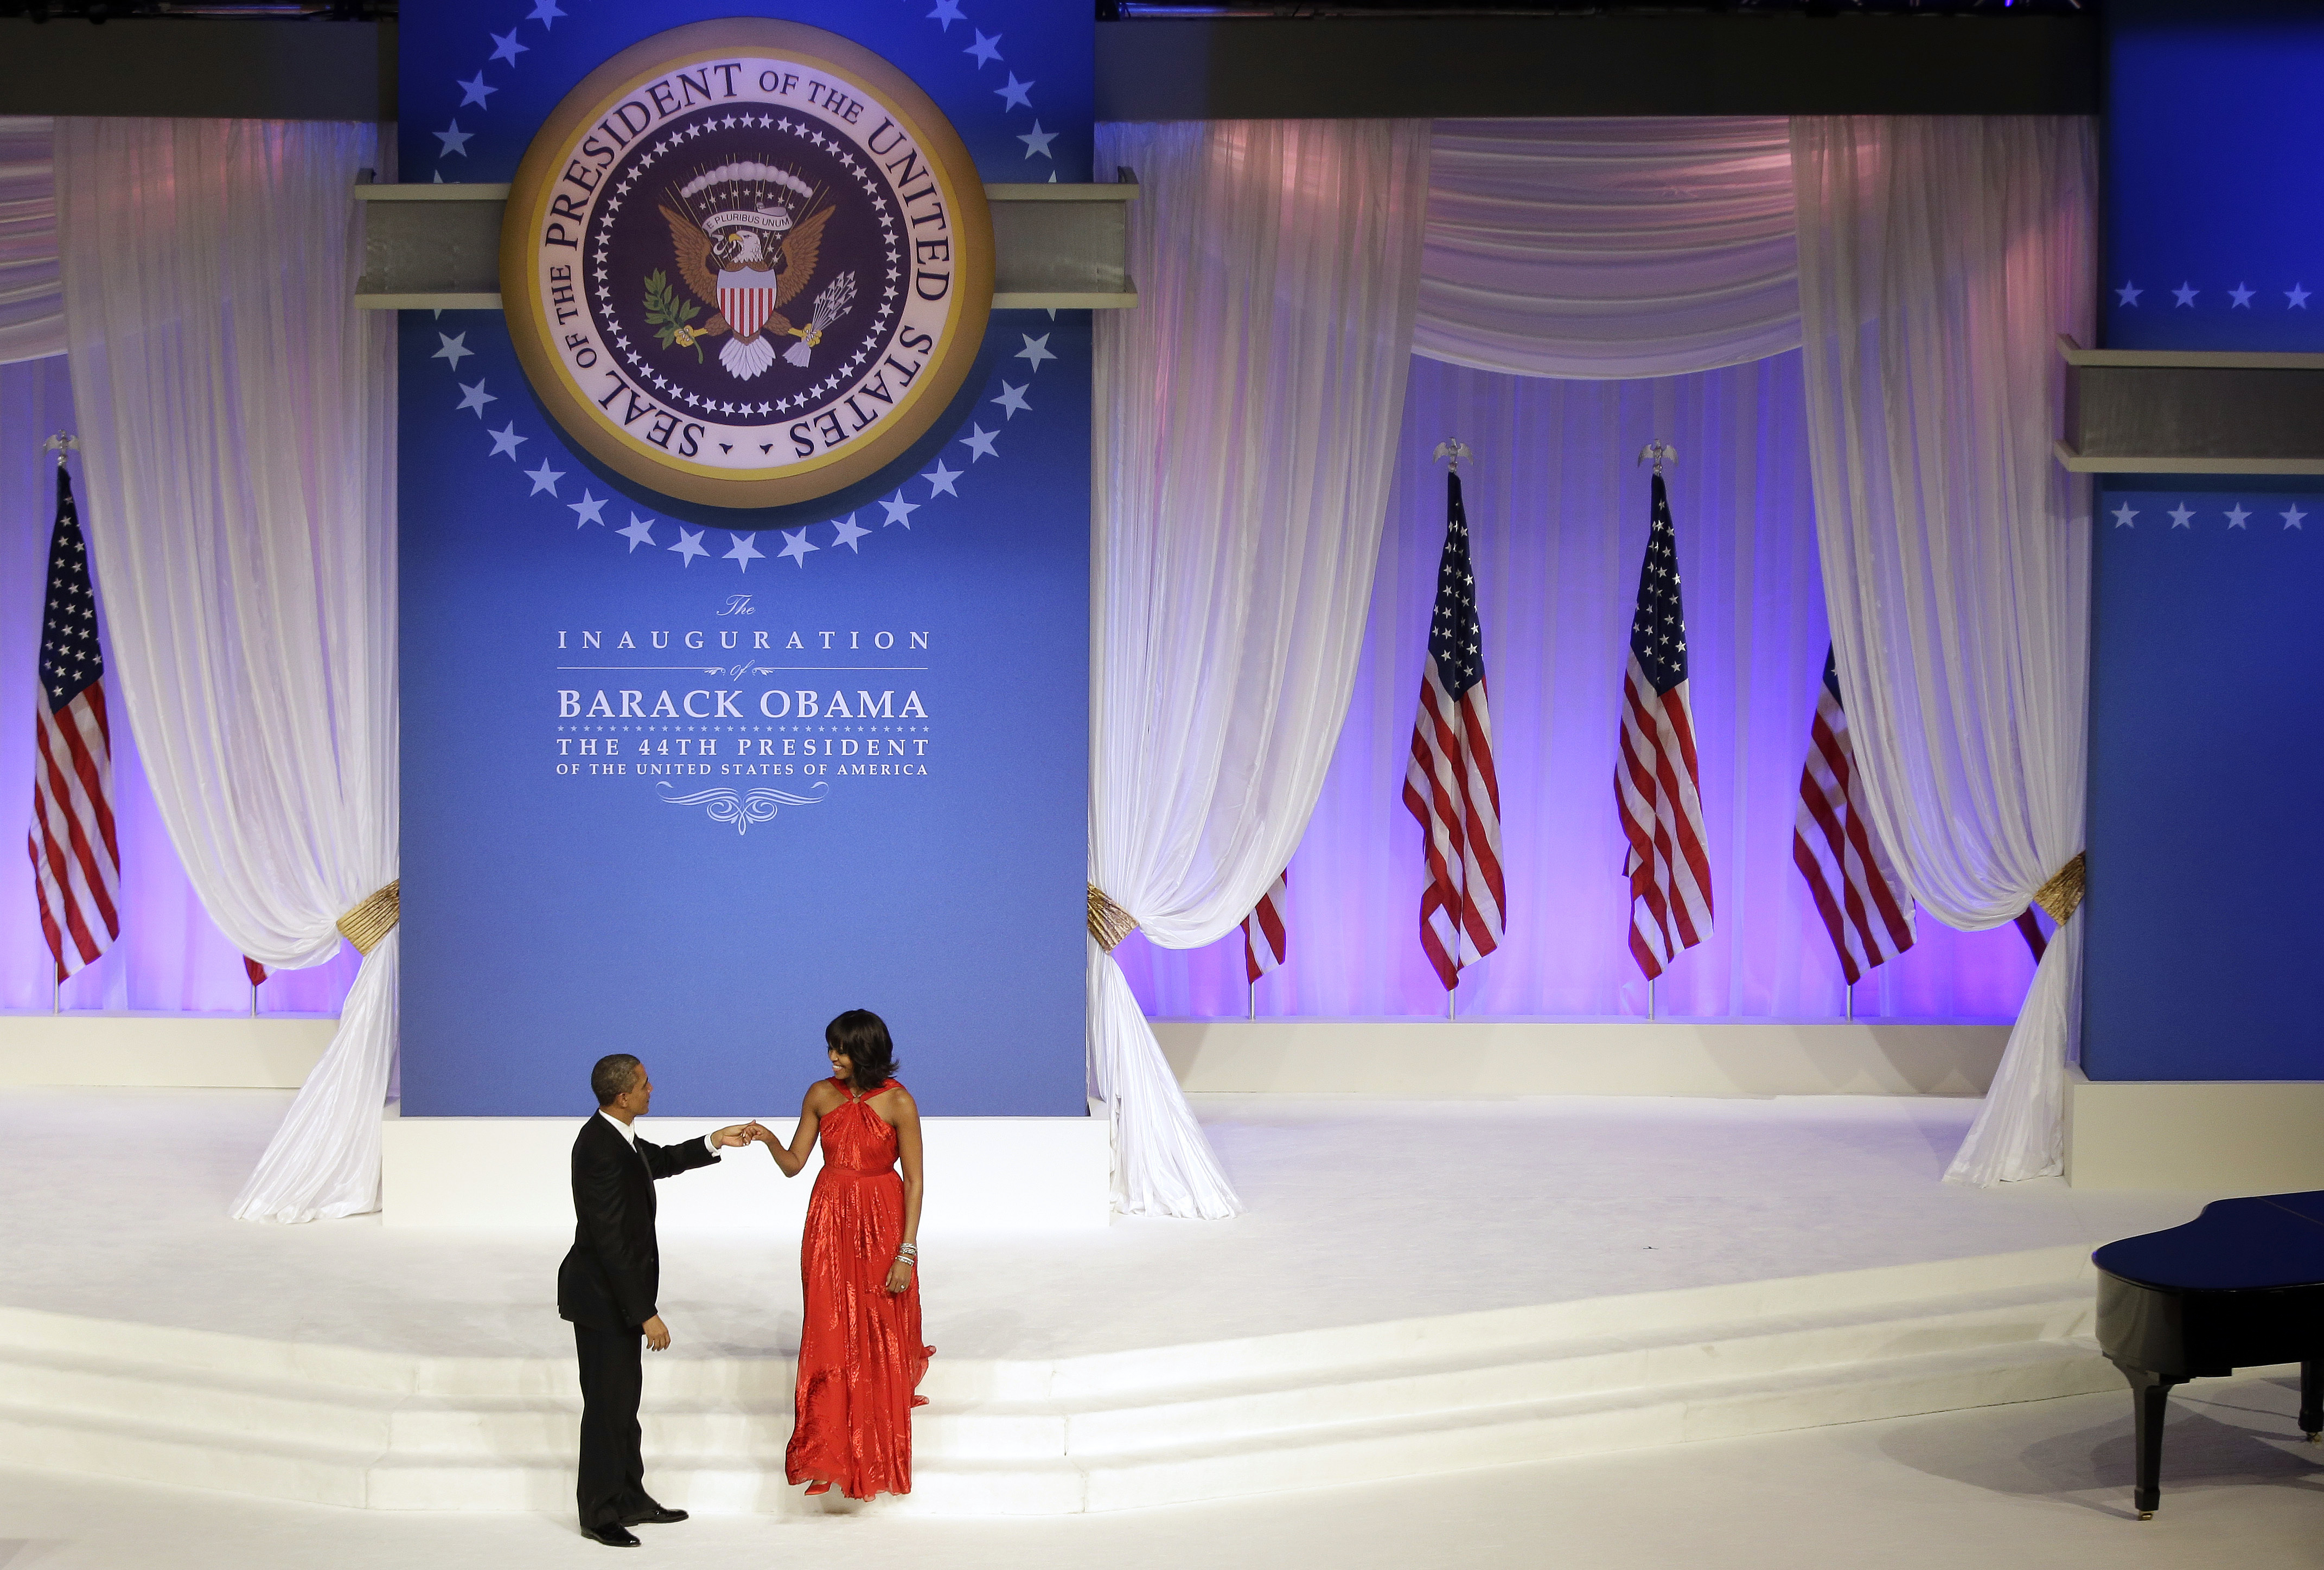 President Obama greets first lady Michelle Obama on stage during the Commander-In-Chief inaugural ball. Michelle's dress was designed by Jason Wu.